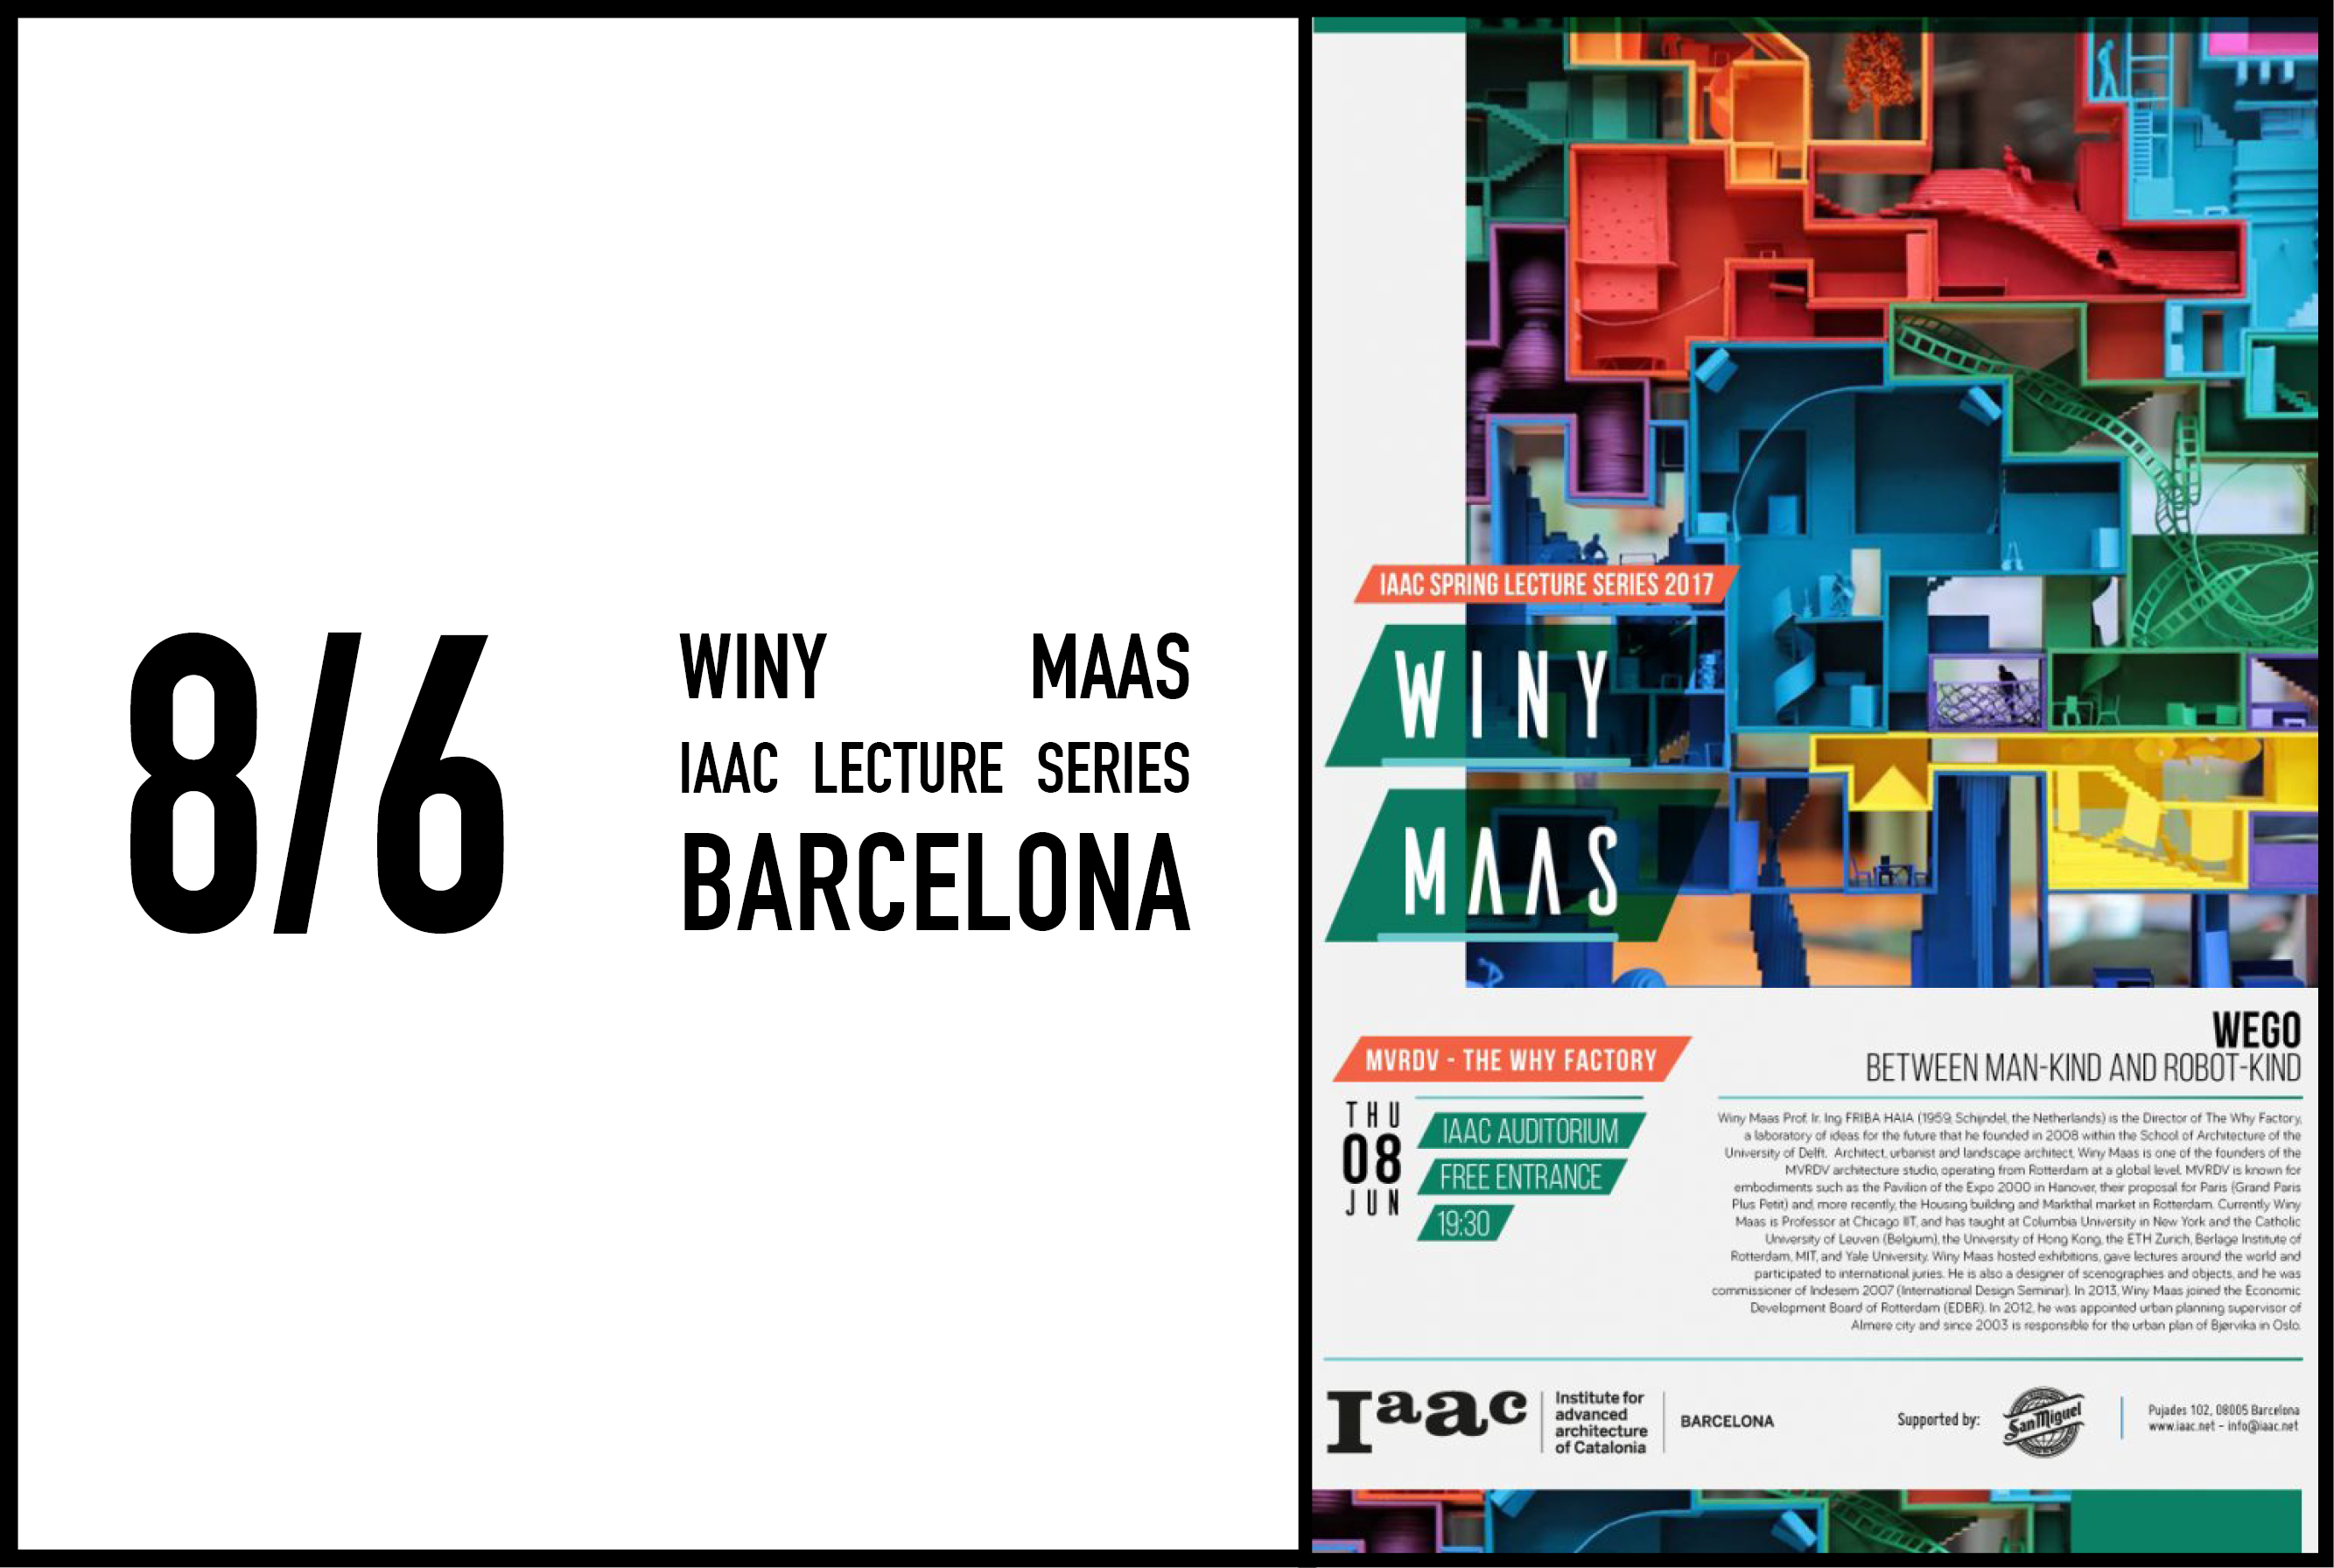 Winy Maas lecture at IAAC Barcelona, 8 June 2017